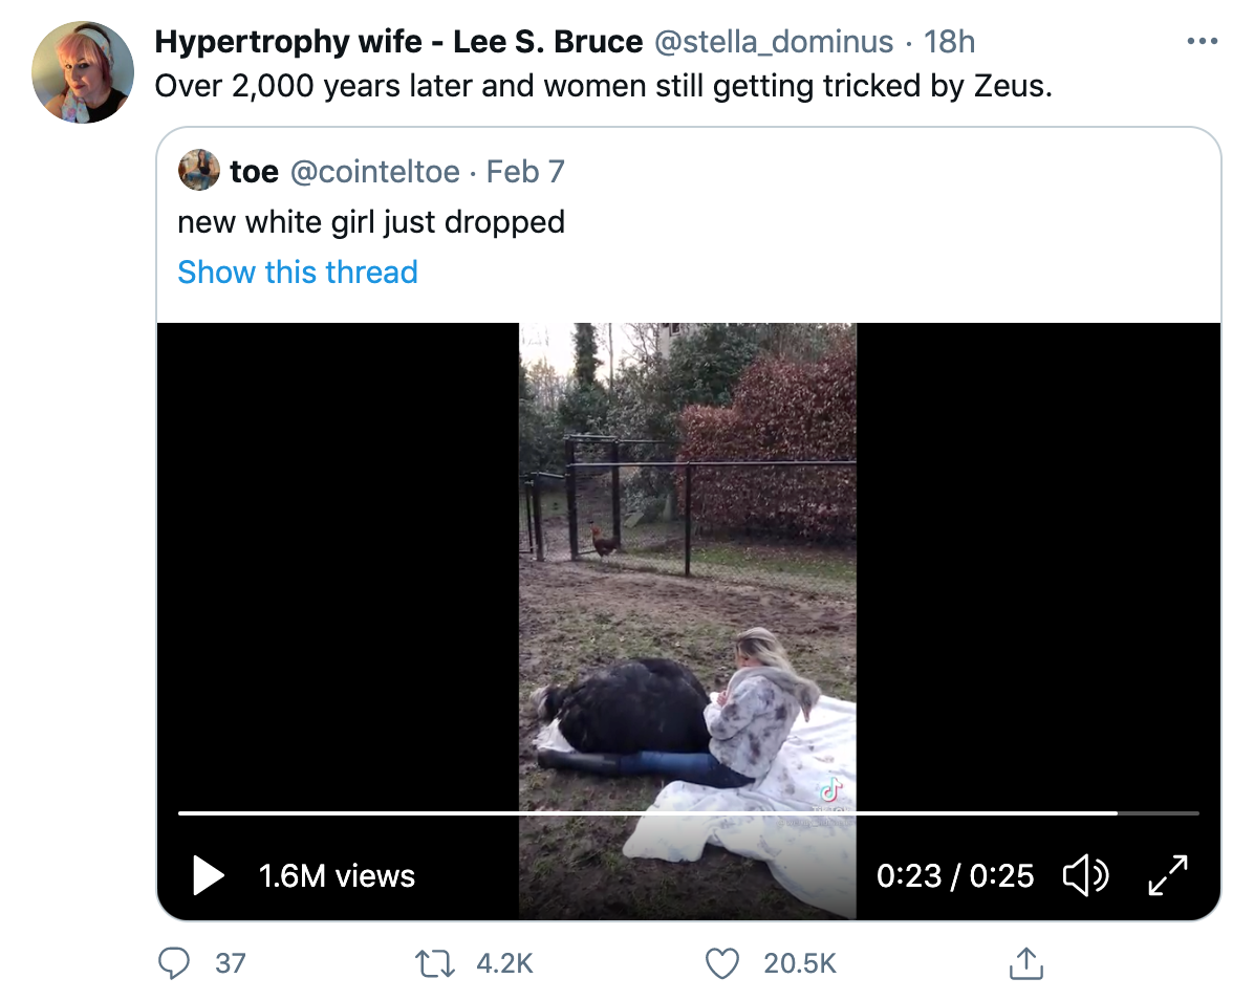 """Over 2,000 years later and women still getting tricked by Zeus."" Embedded tweet: ""New white girl just dropped"" and then the tiktok embedded"